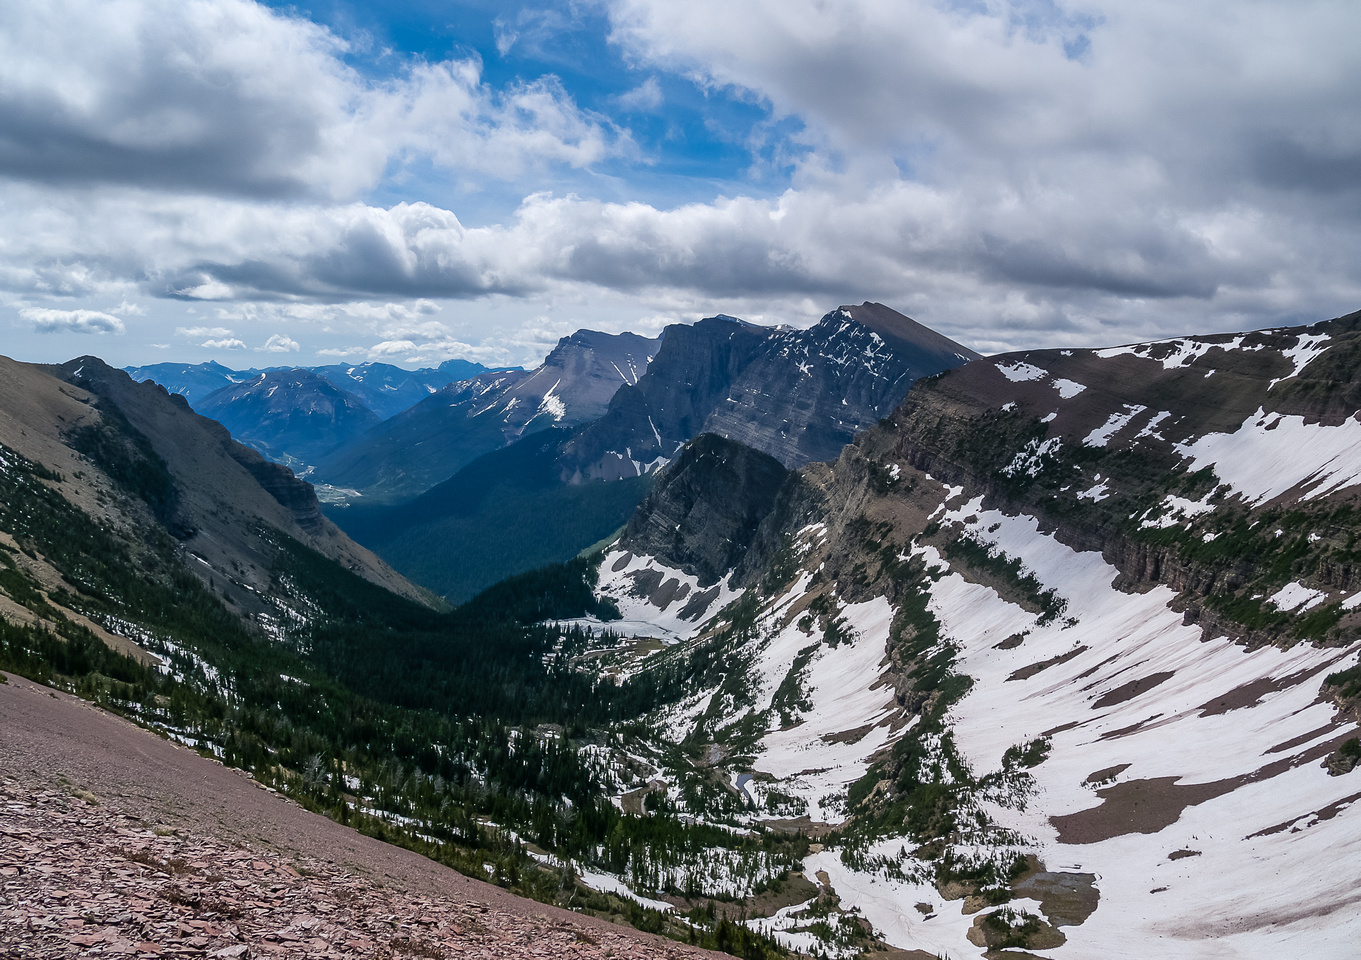 Looking over Goat Lake to Anderson, Blakiston and Ruby Ridge.